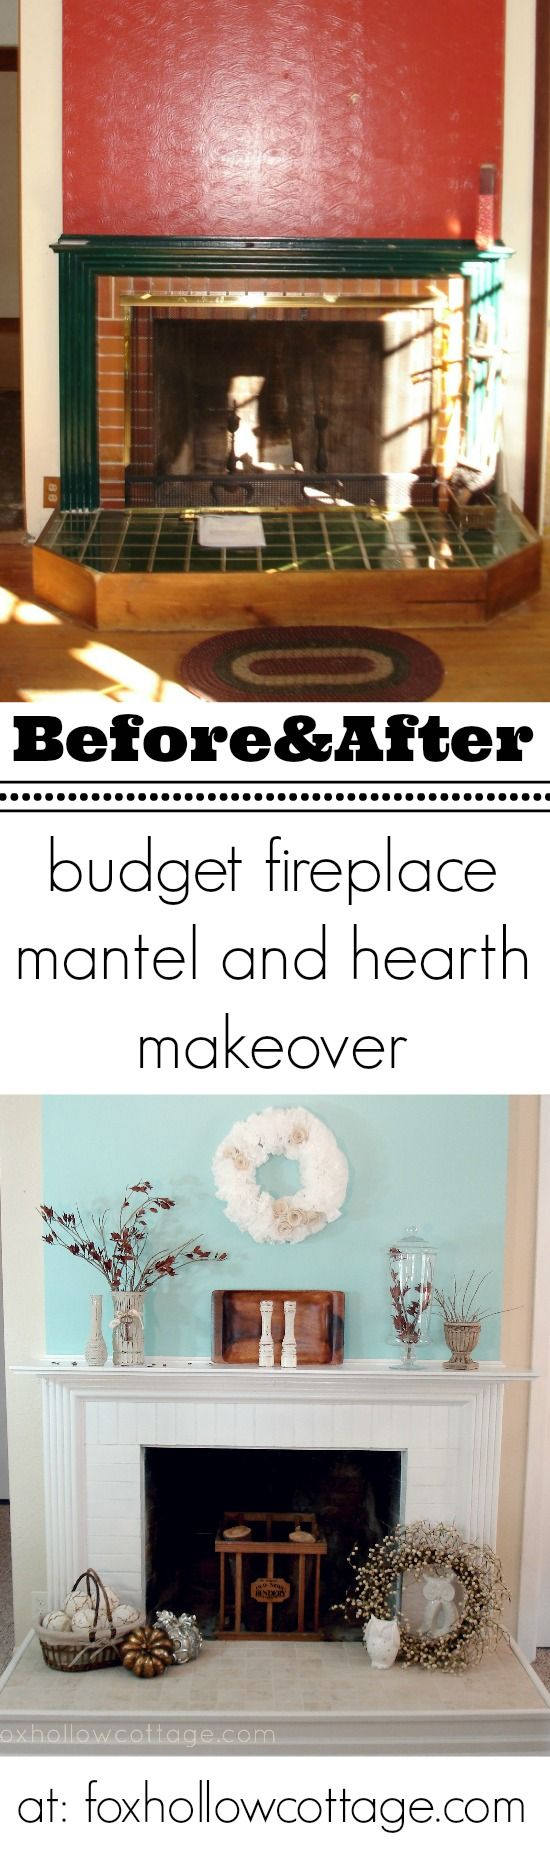 Diy Fireplace Makeover Ideas 54 Best Fireplace Mantles Images On Pinterest